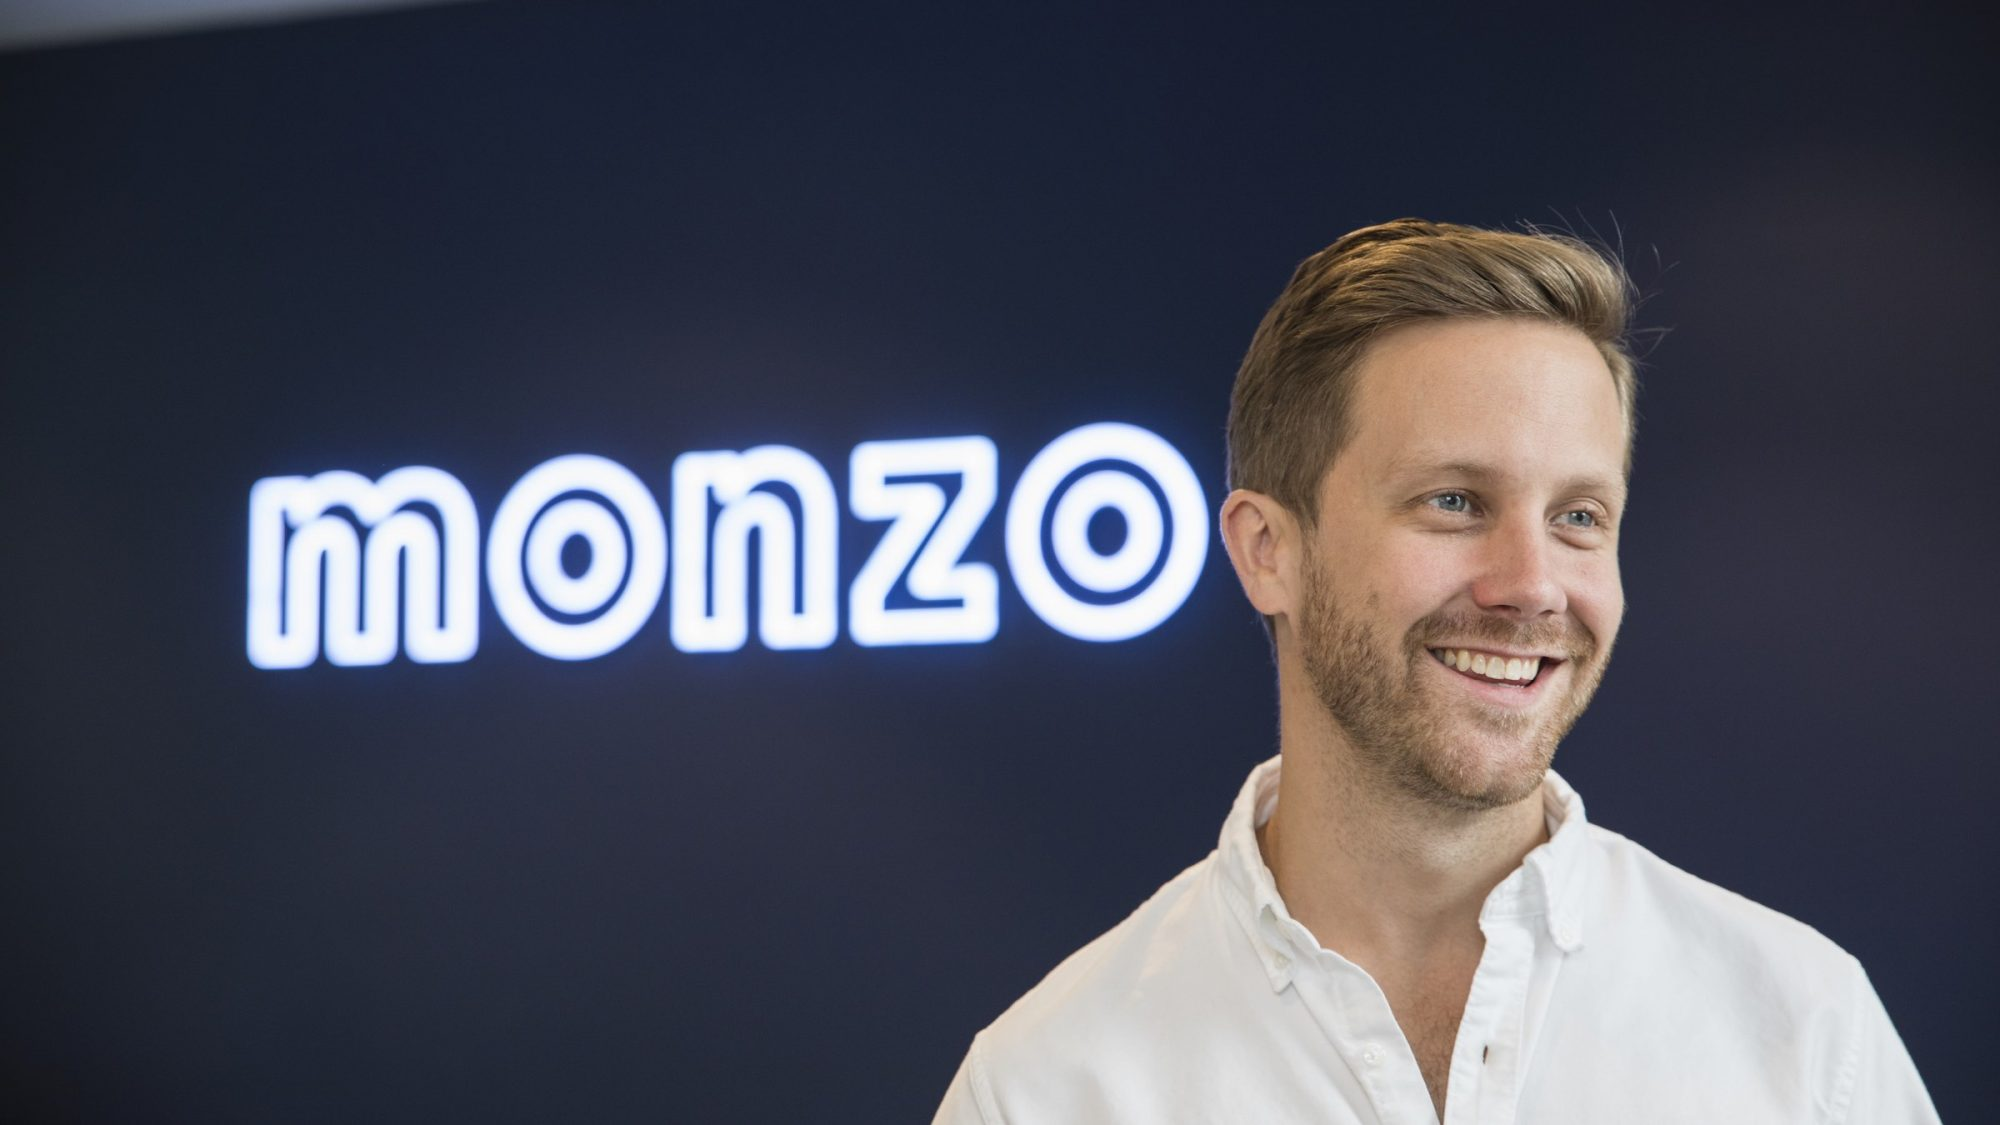 Monzo CEO Tom Blomfield